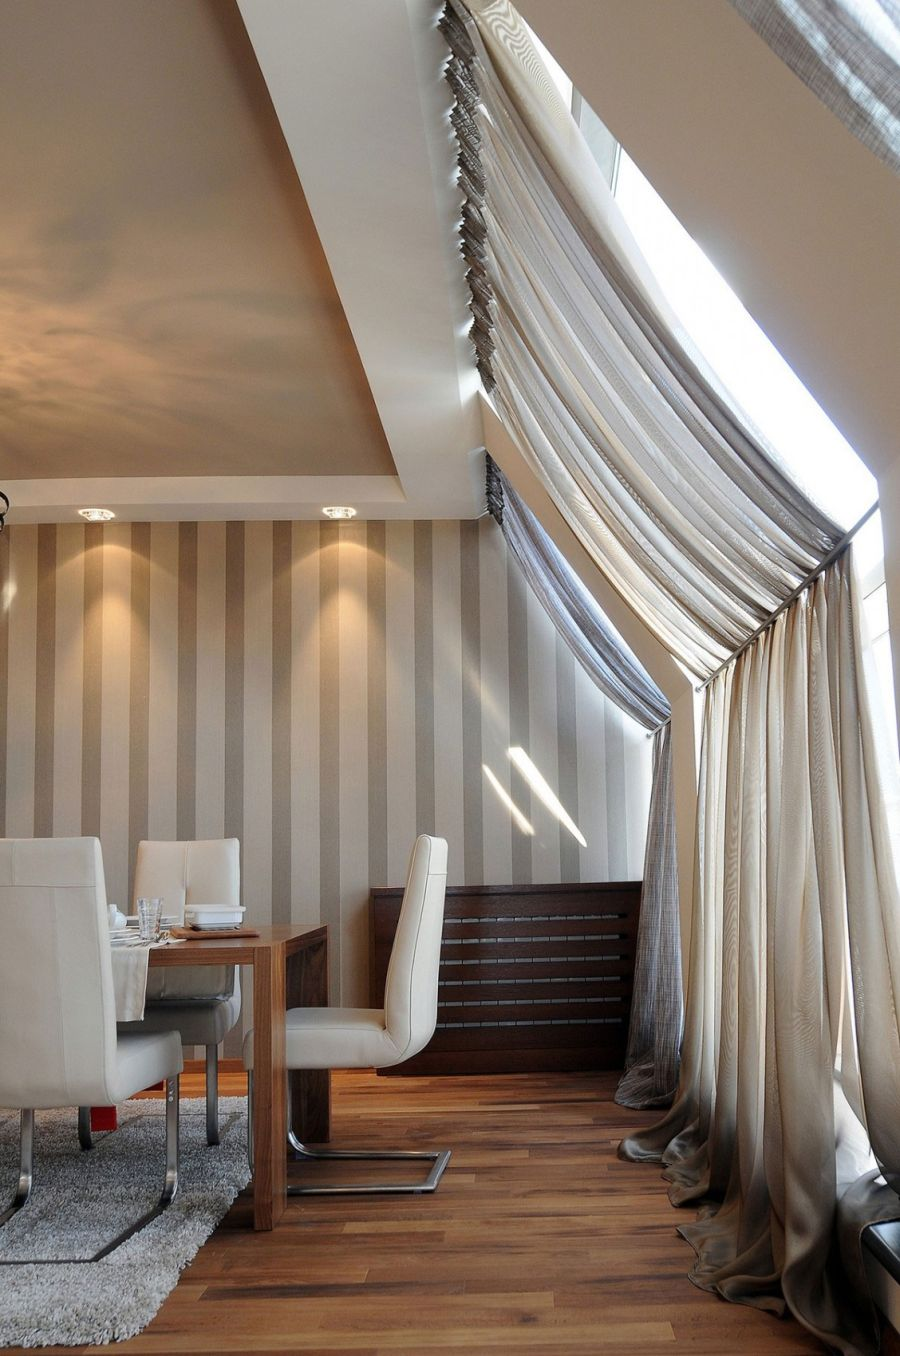 Lovely use of drapes in the dining space